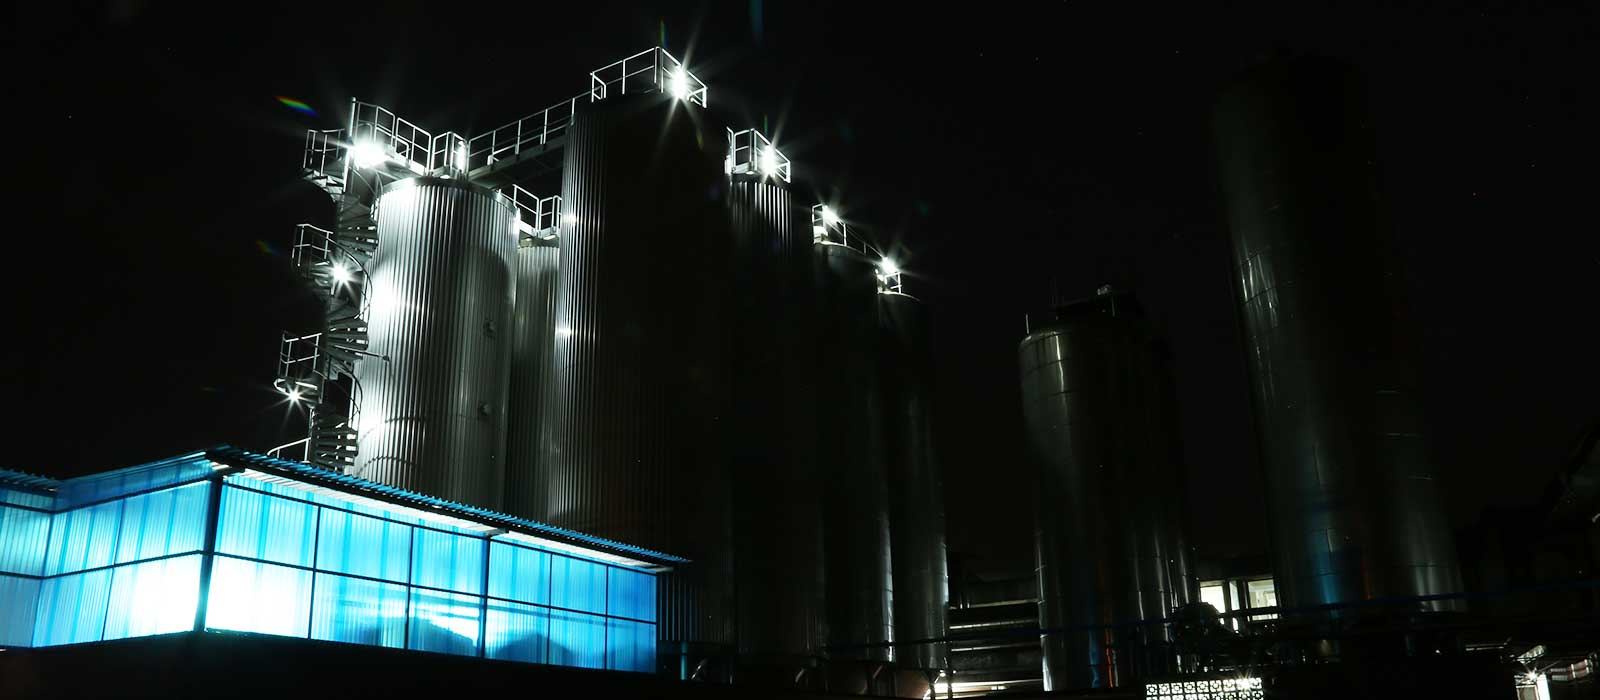 monbrew_brewery_003